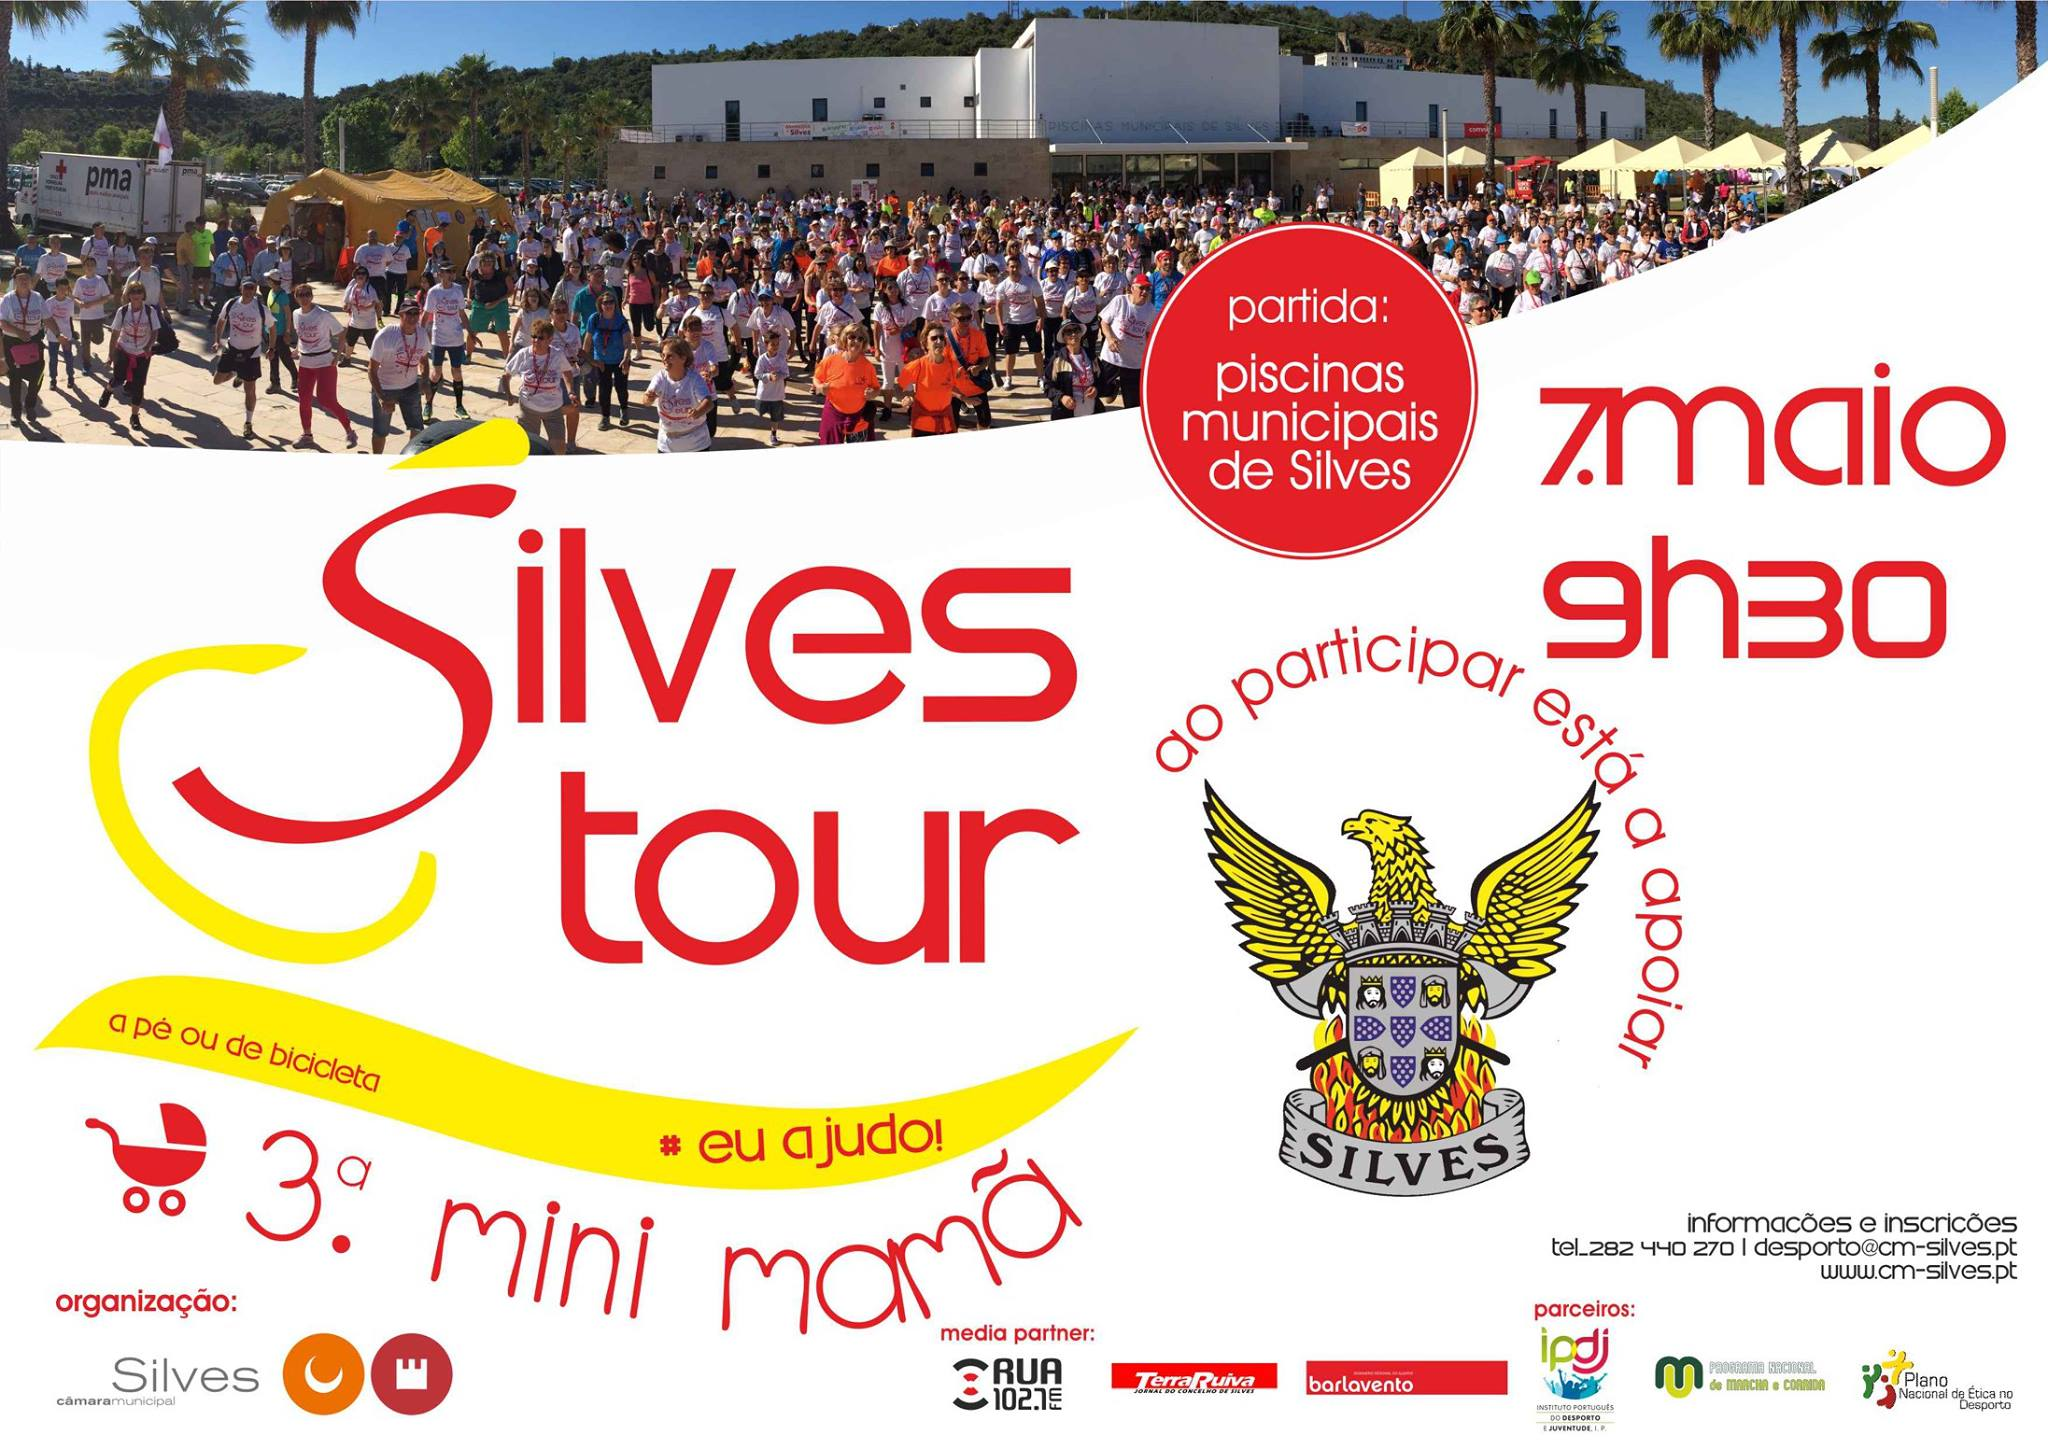 Silves Tour 2017 3ª Mini Mamã